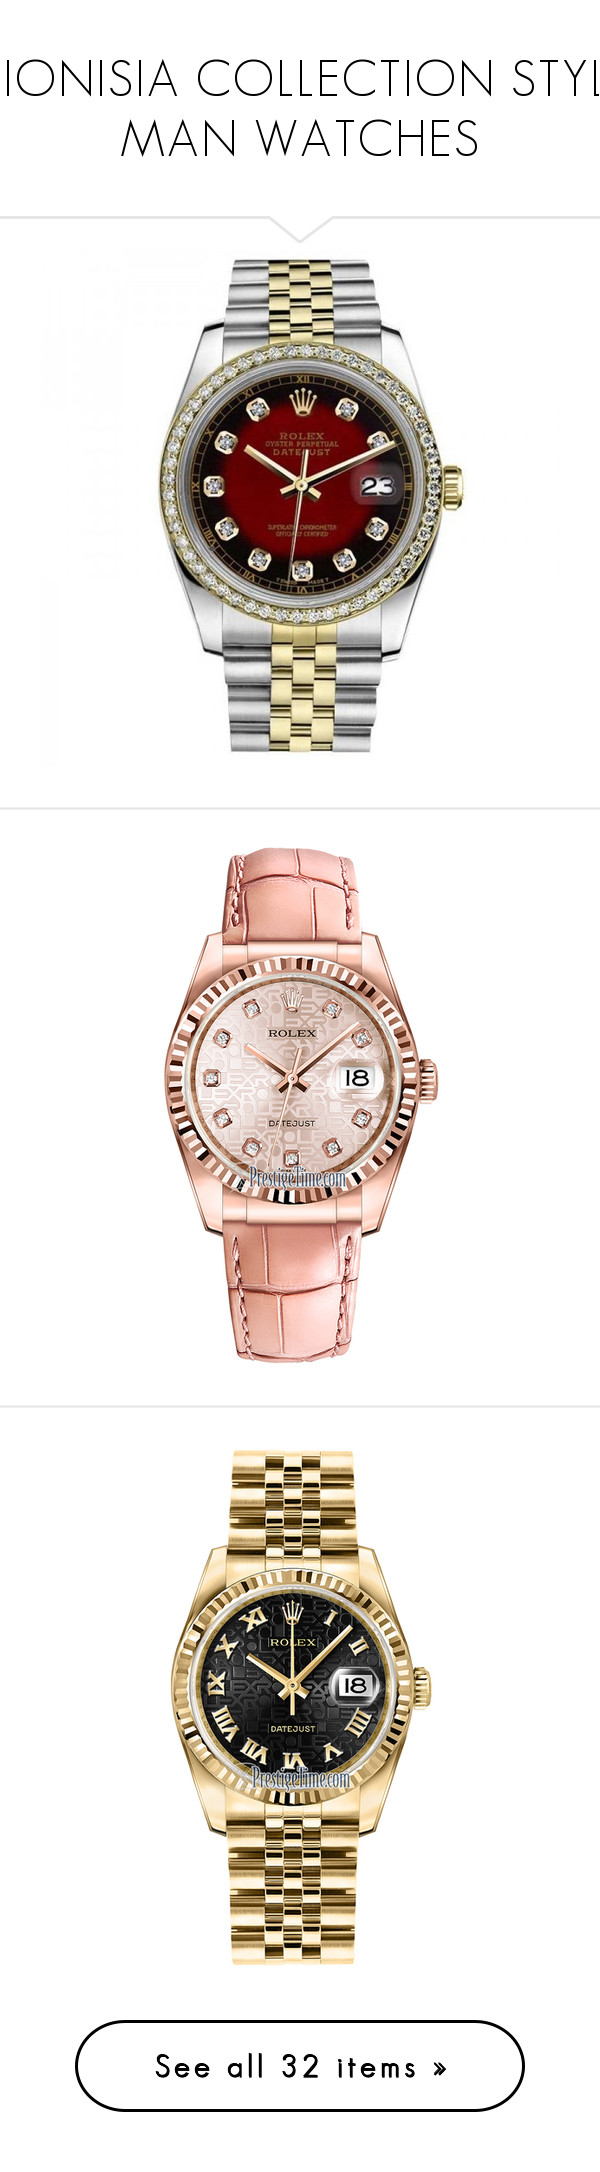 """""""DIONISIA COLLECTION STYLE MAN WATCHES"""" by dionisia-dionisia on Polyvore featuring jewelry, watches, rolex wrist watch, dial watches, pre owned jewelry, red watches, two-tone watches, relógios, gold jewelry e pink jewelry"""